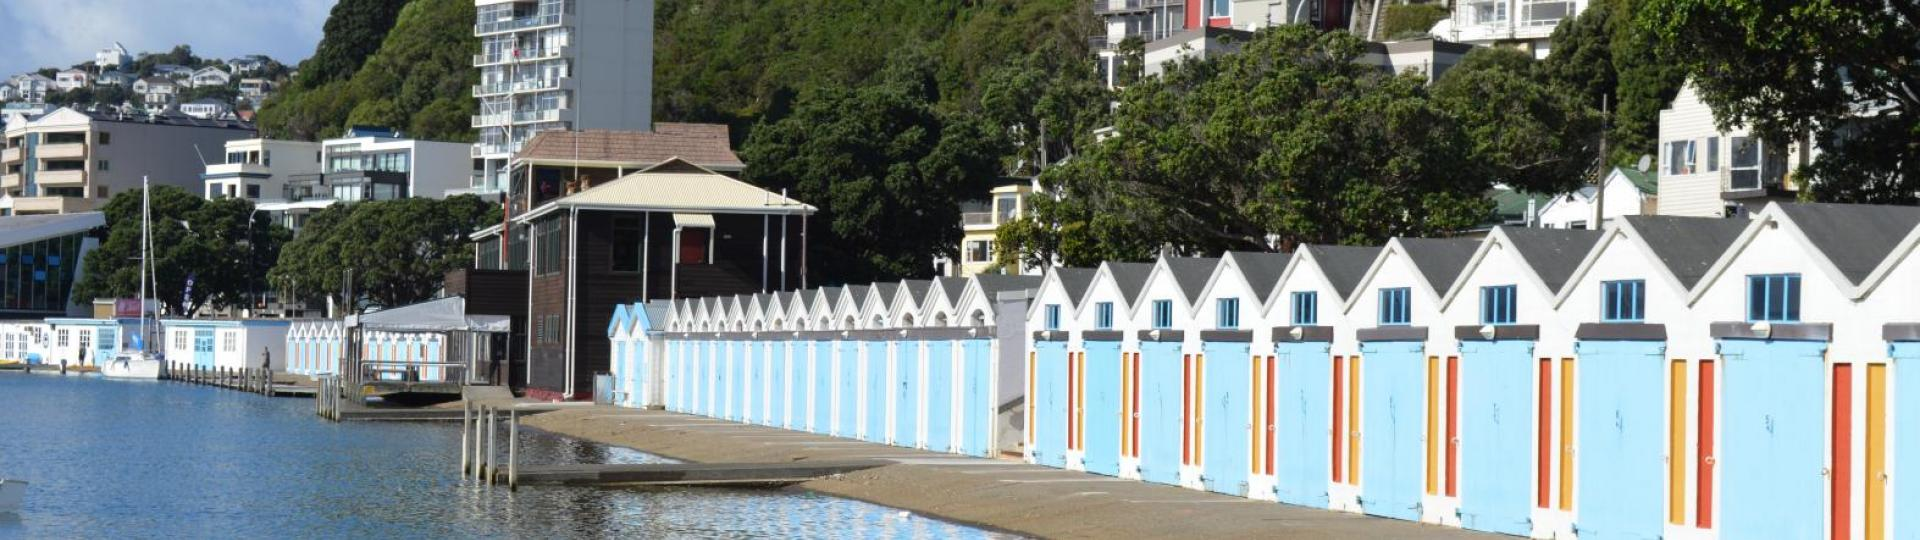 Boat sheds along Oriental Parade